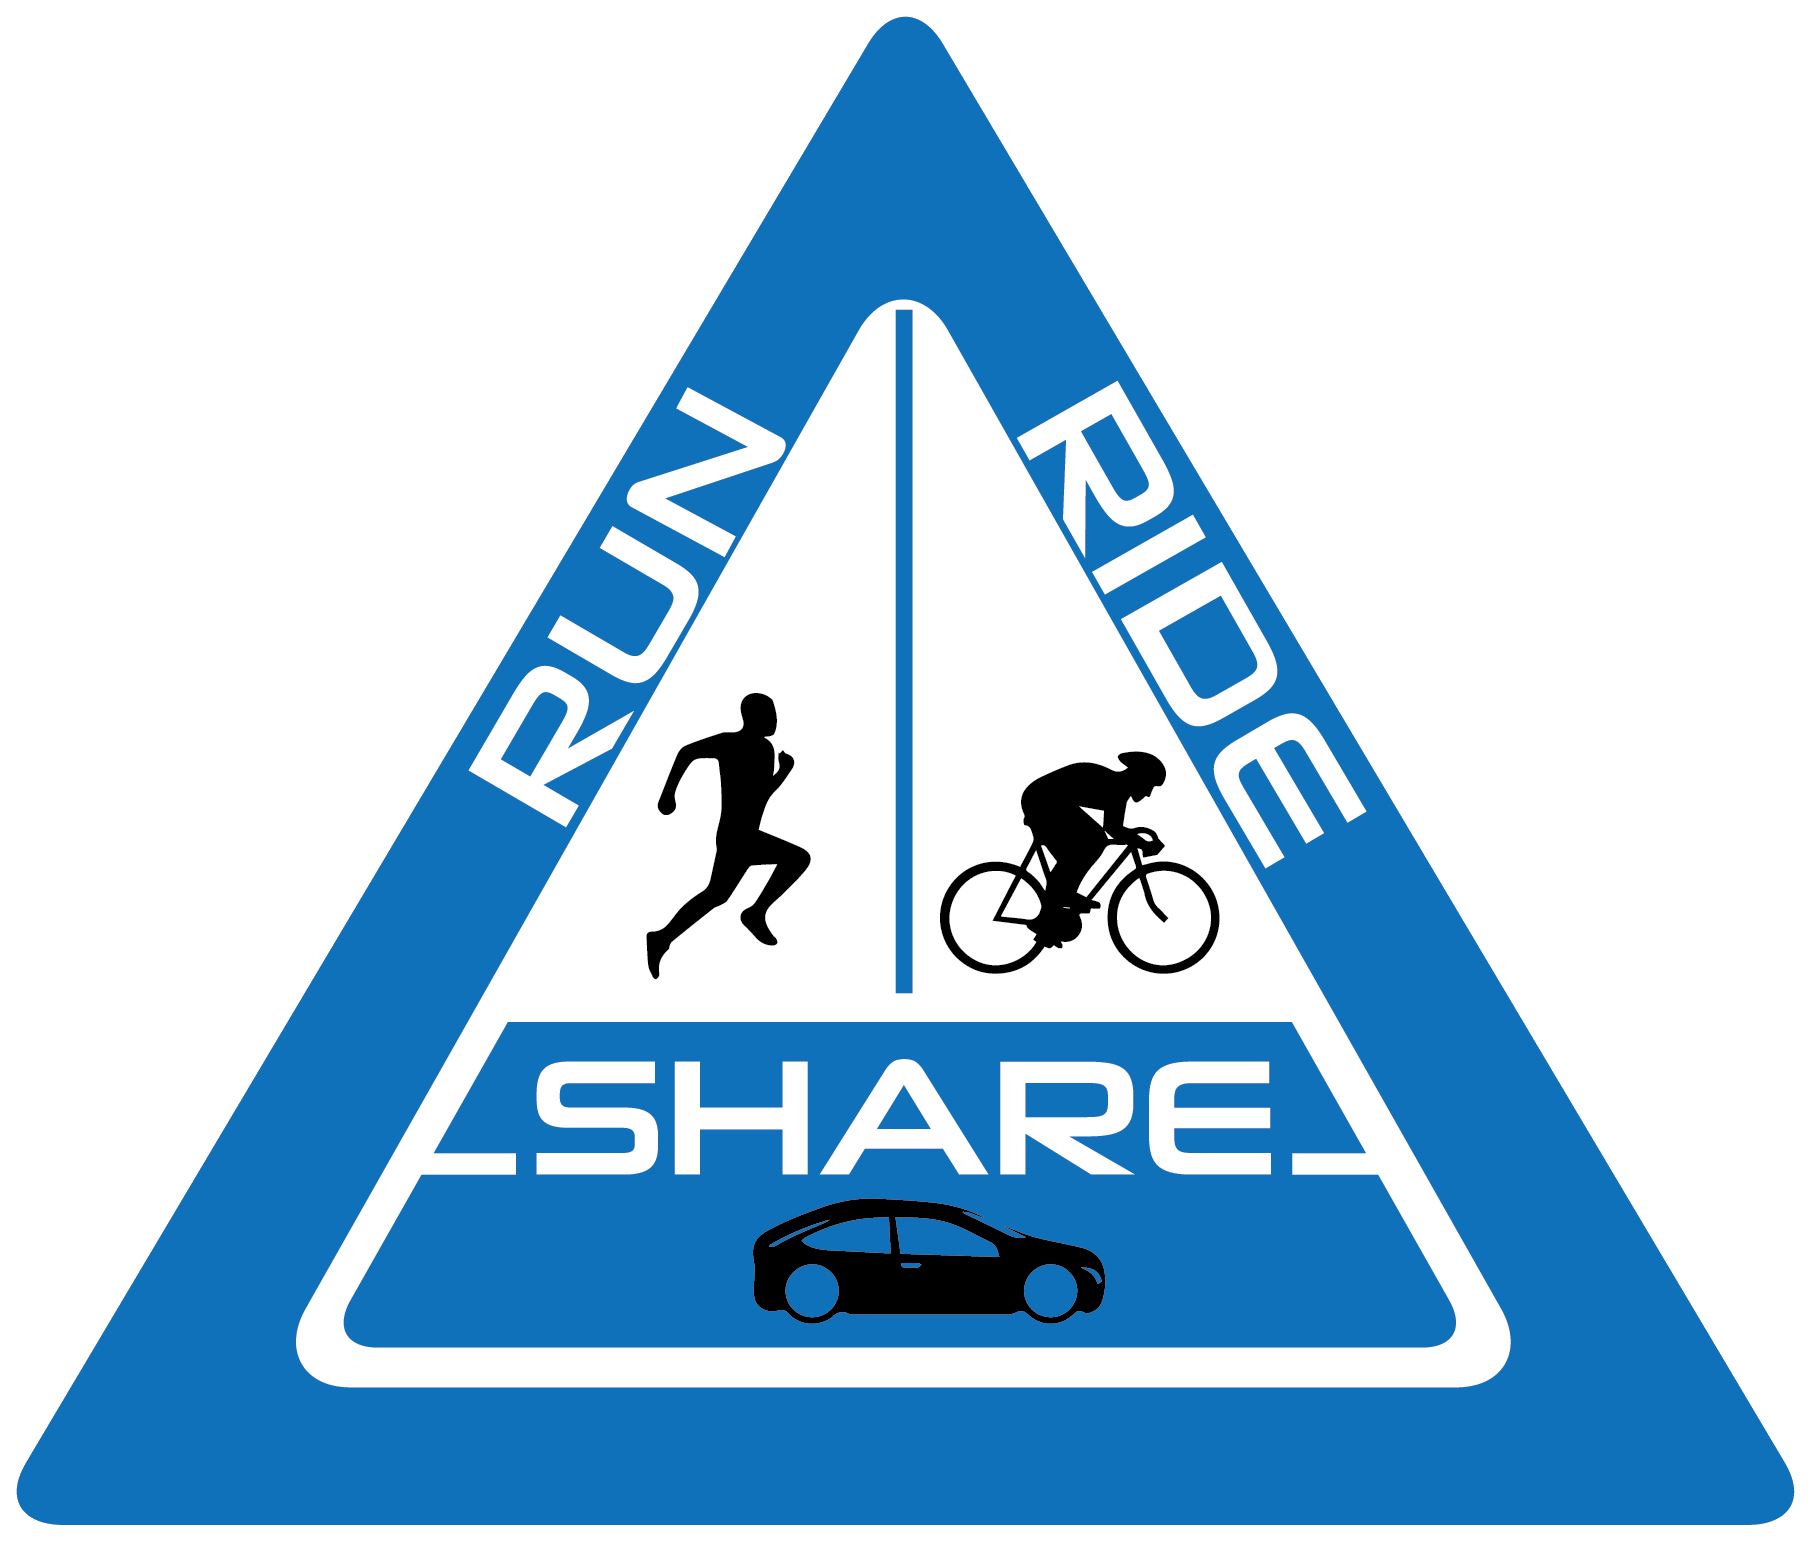 run-ride-share-fw